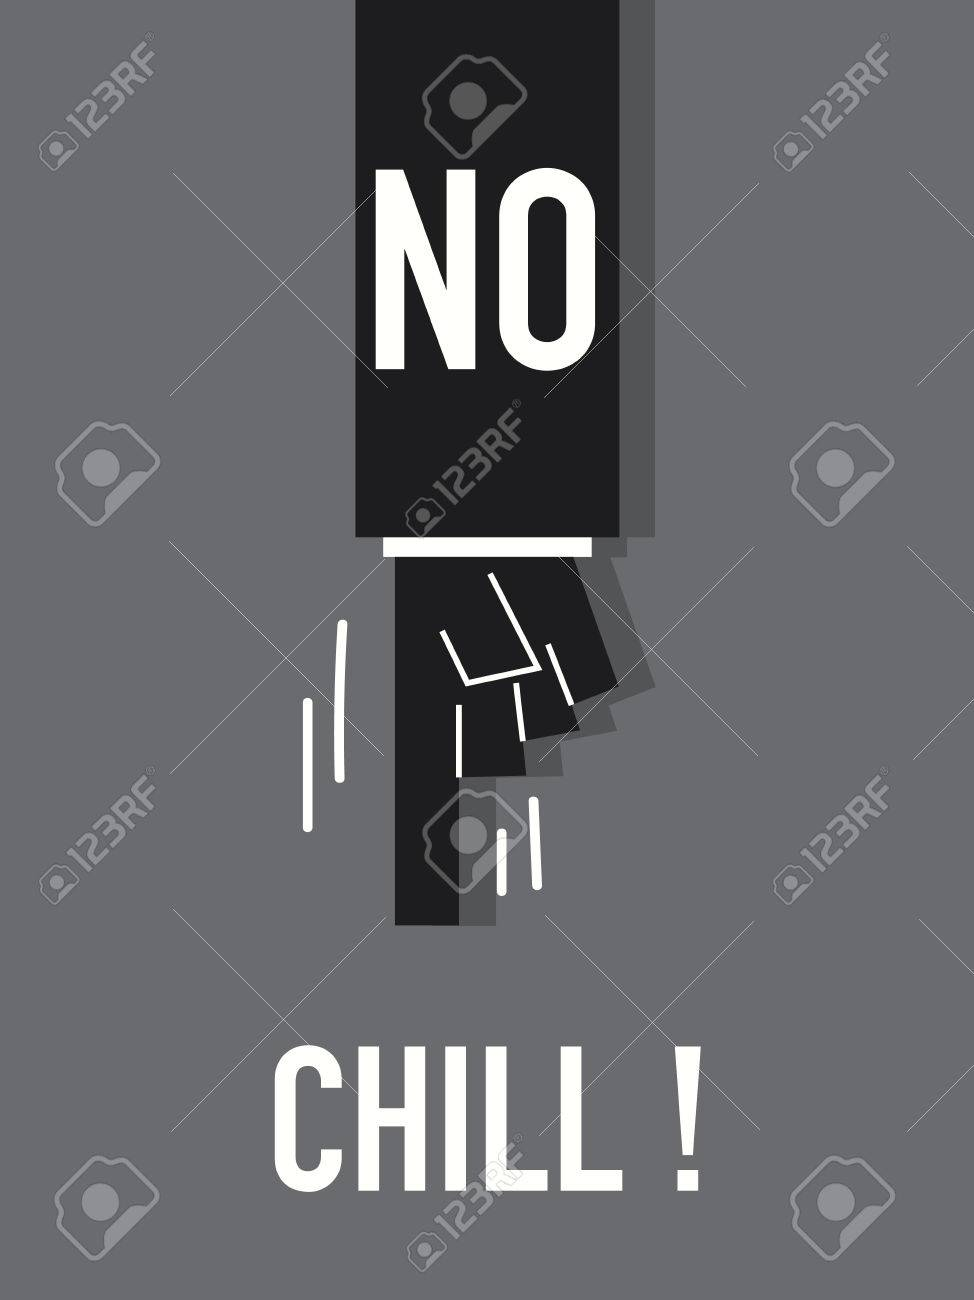 Words NO CHILL Royalty Free Cliparts, Vectors, And Stock ...